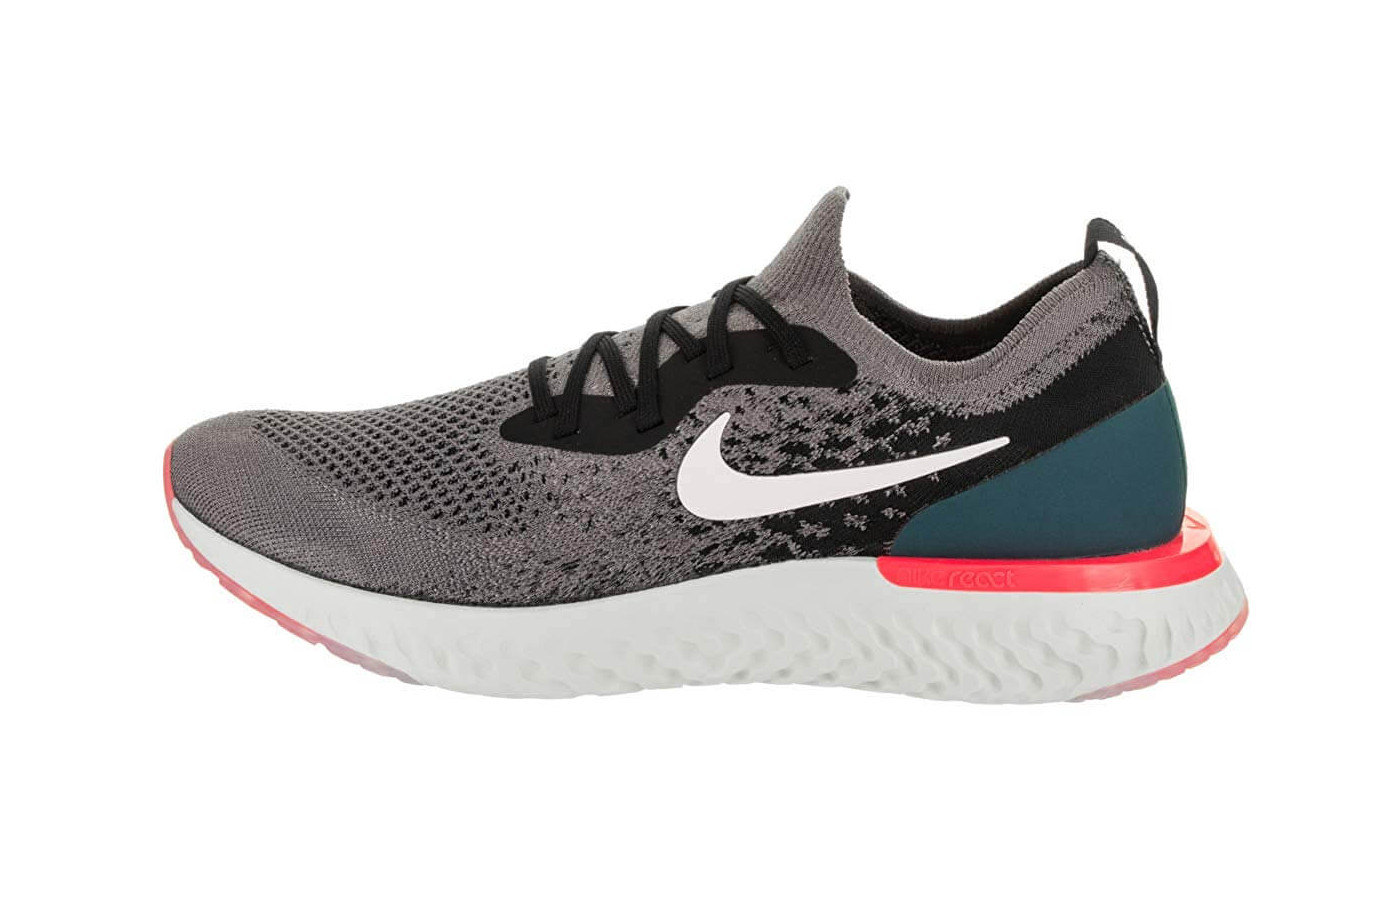 Nike Epic React Flyknit Review 2019